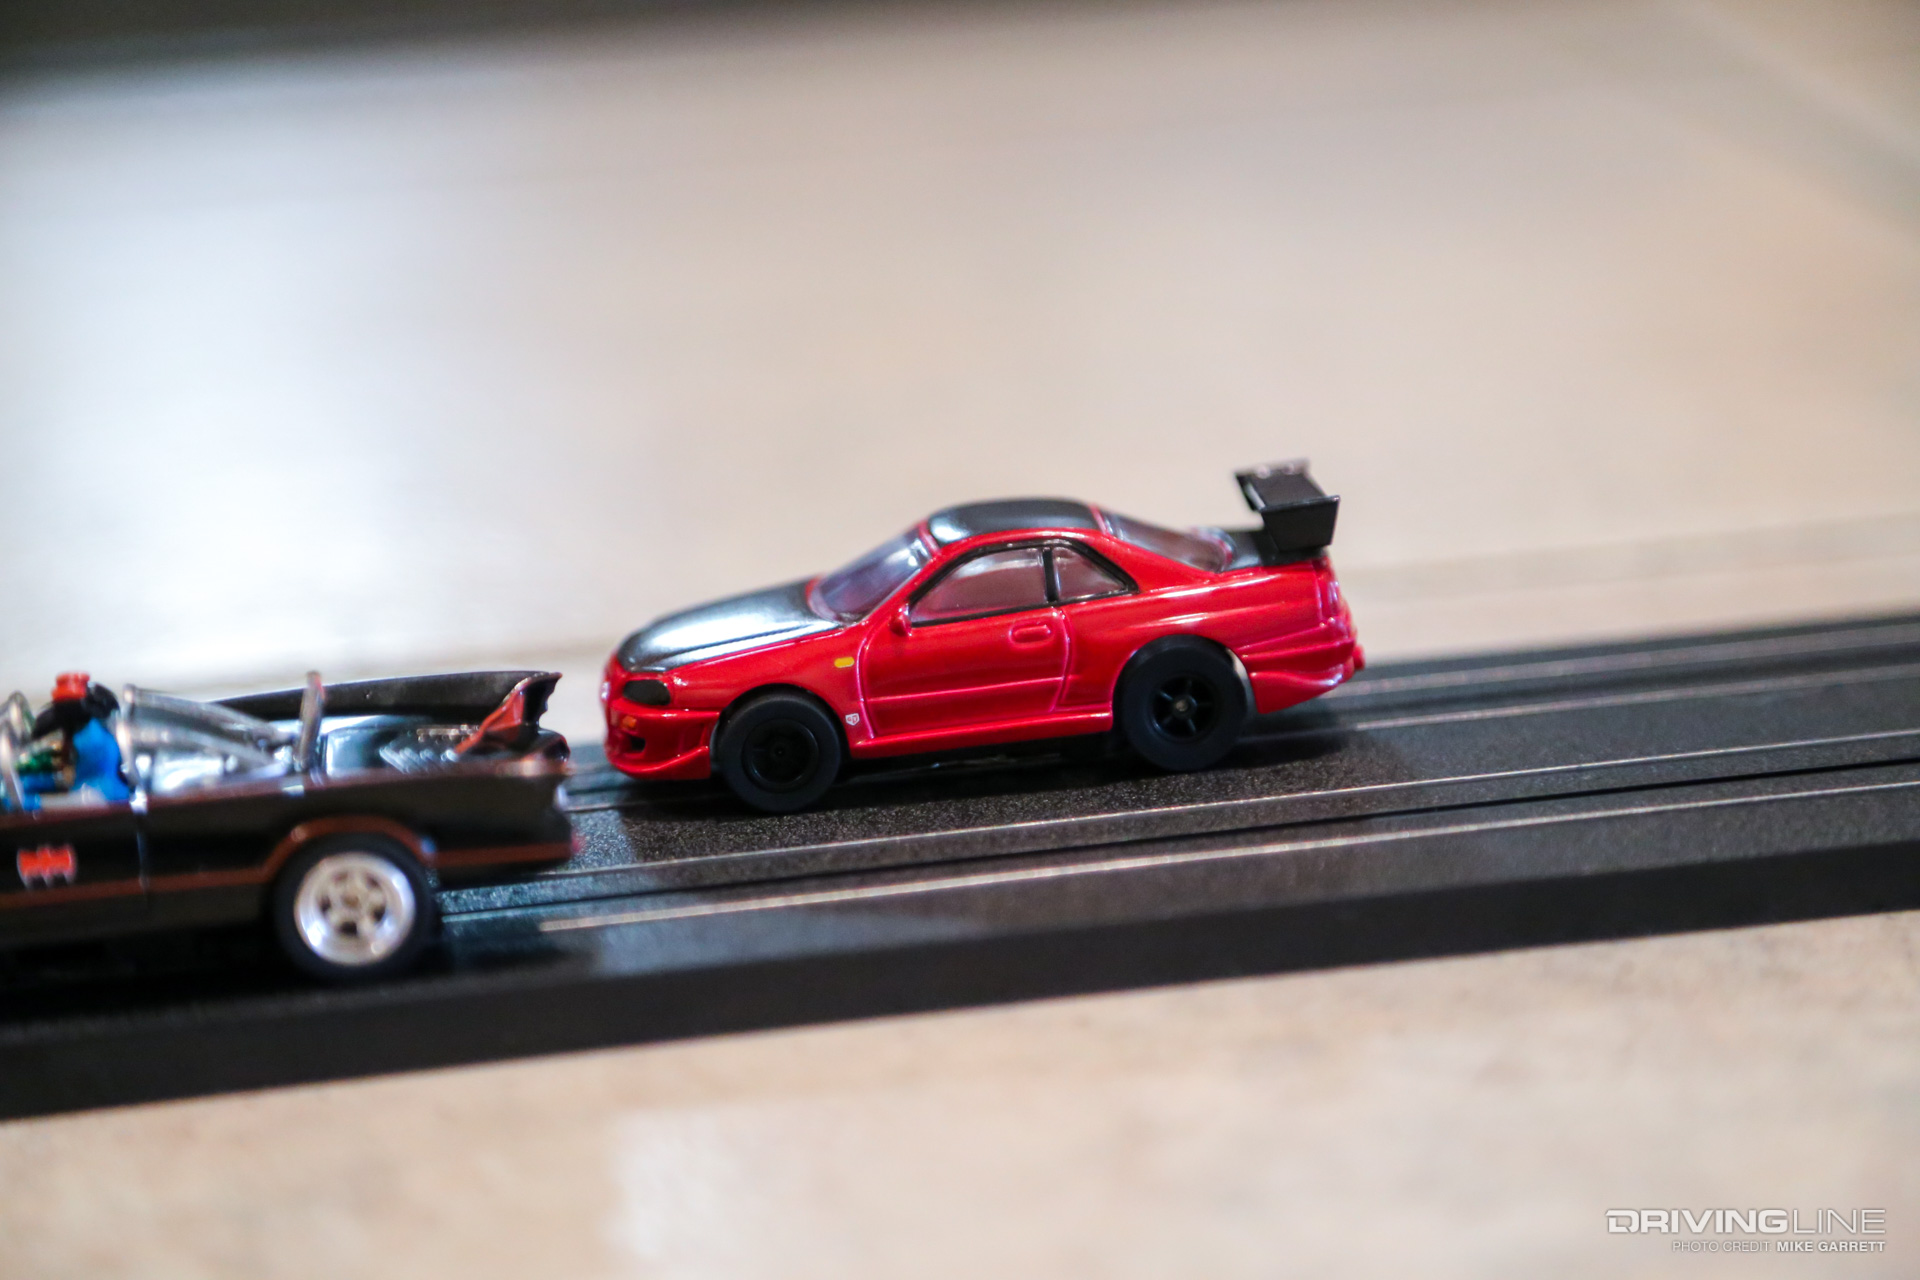 Slot Cars Forever Rediscovering The Fun Of Miniature Racing With Auto World Drivingline